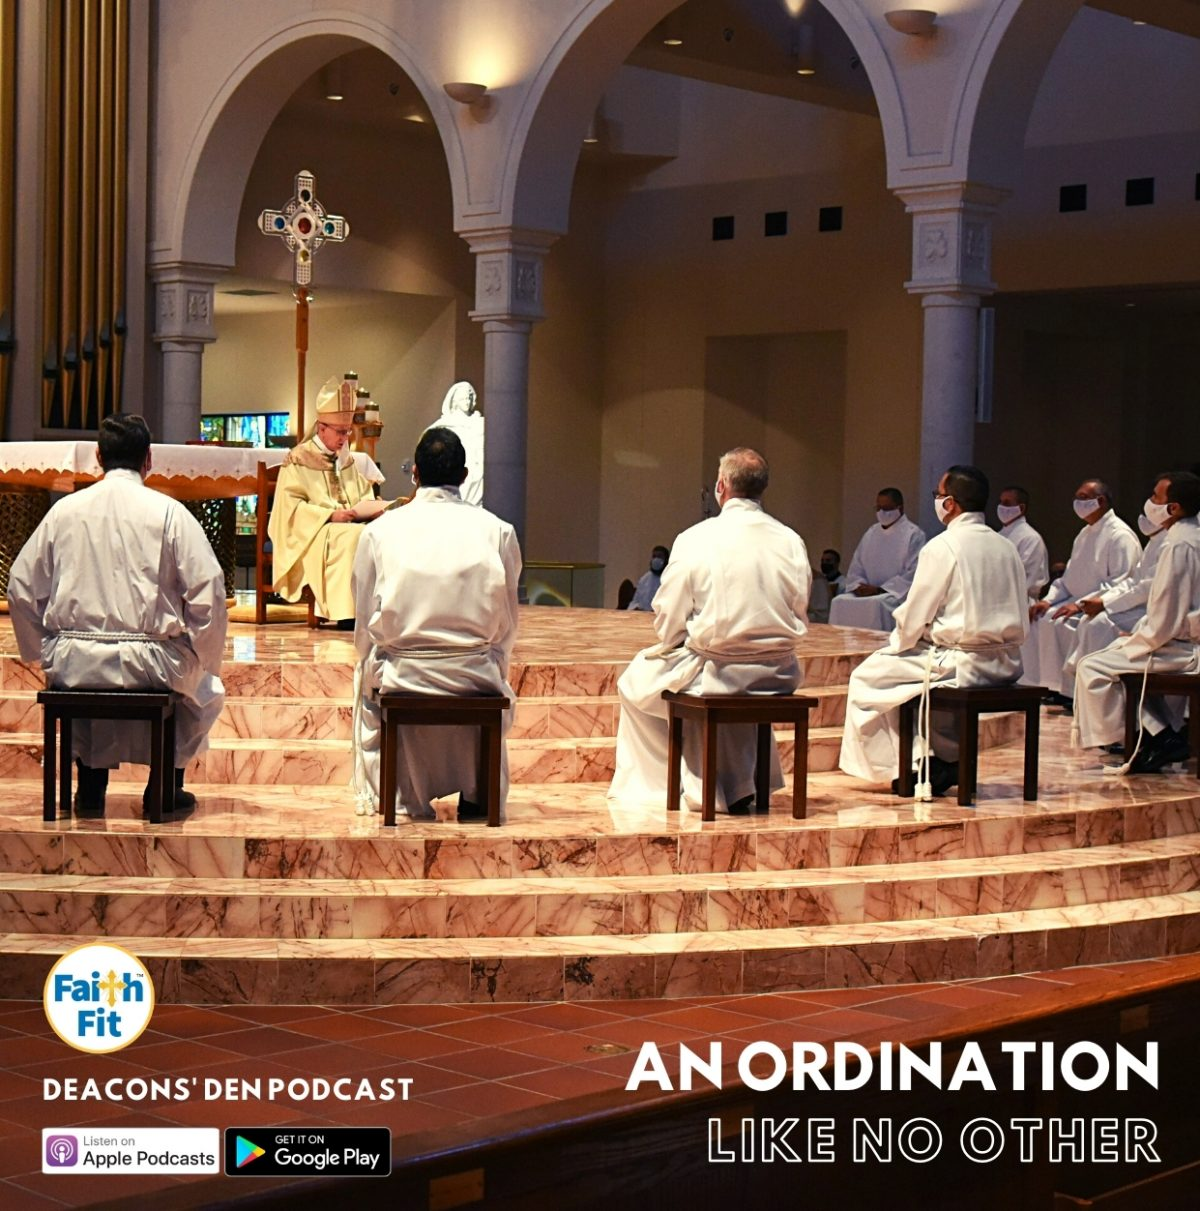 #6: An Ordination Like No Other